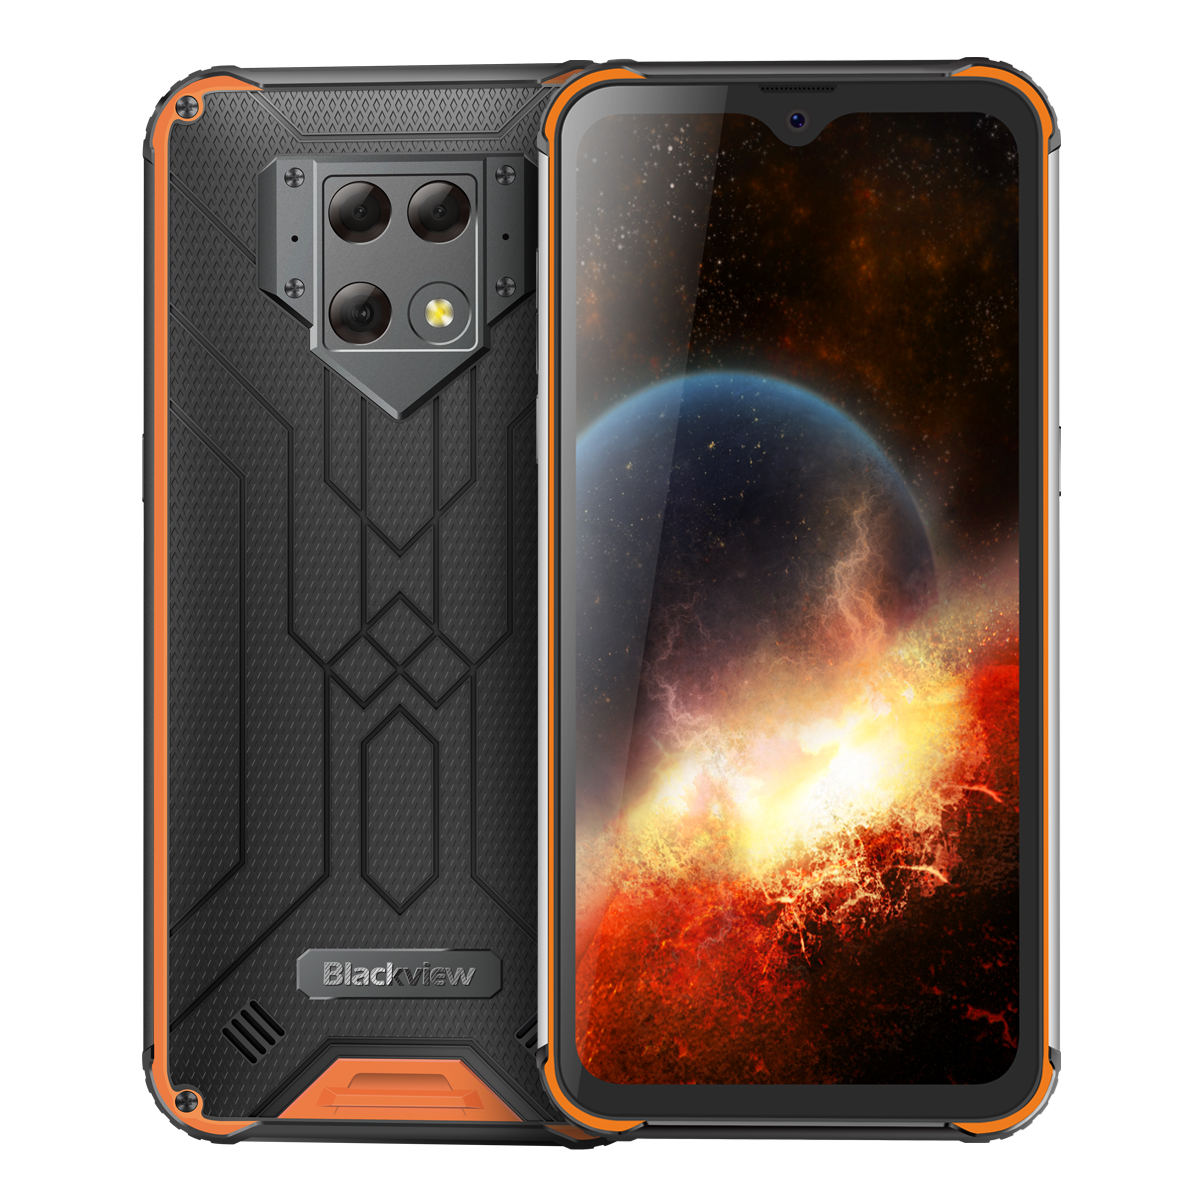 Blackview BV9800 Rugged IP69K Waterproof Helio P70 Octa-core Android 9.0 6GB+128GB Triple 48MP Camera 6580mAh 6.3